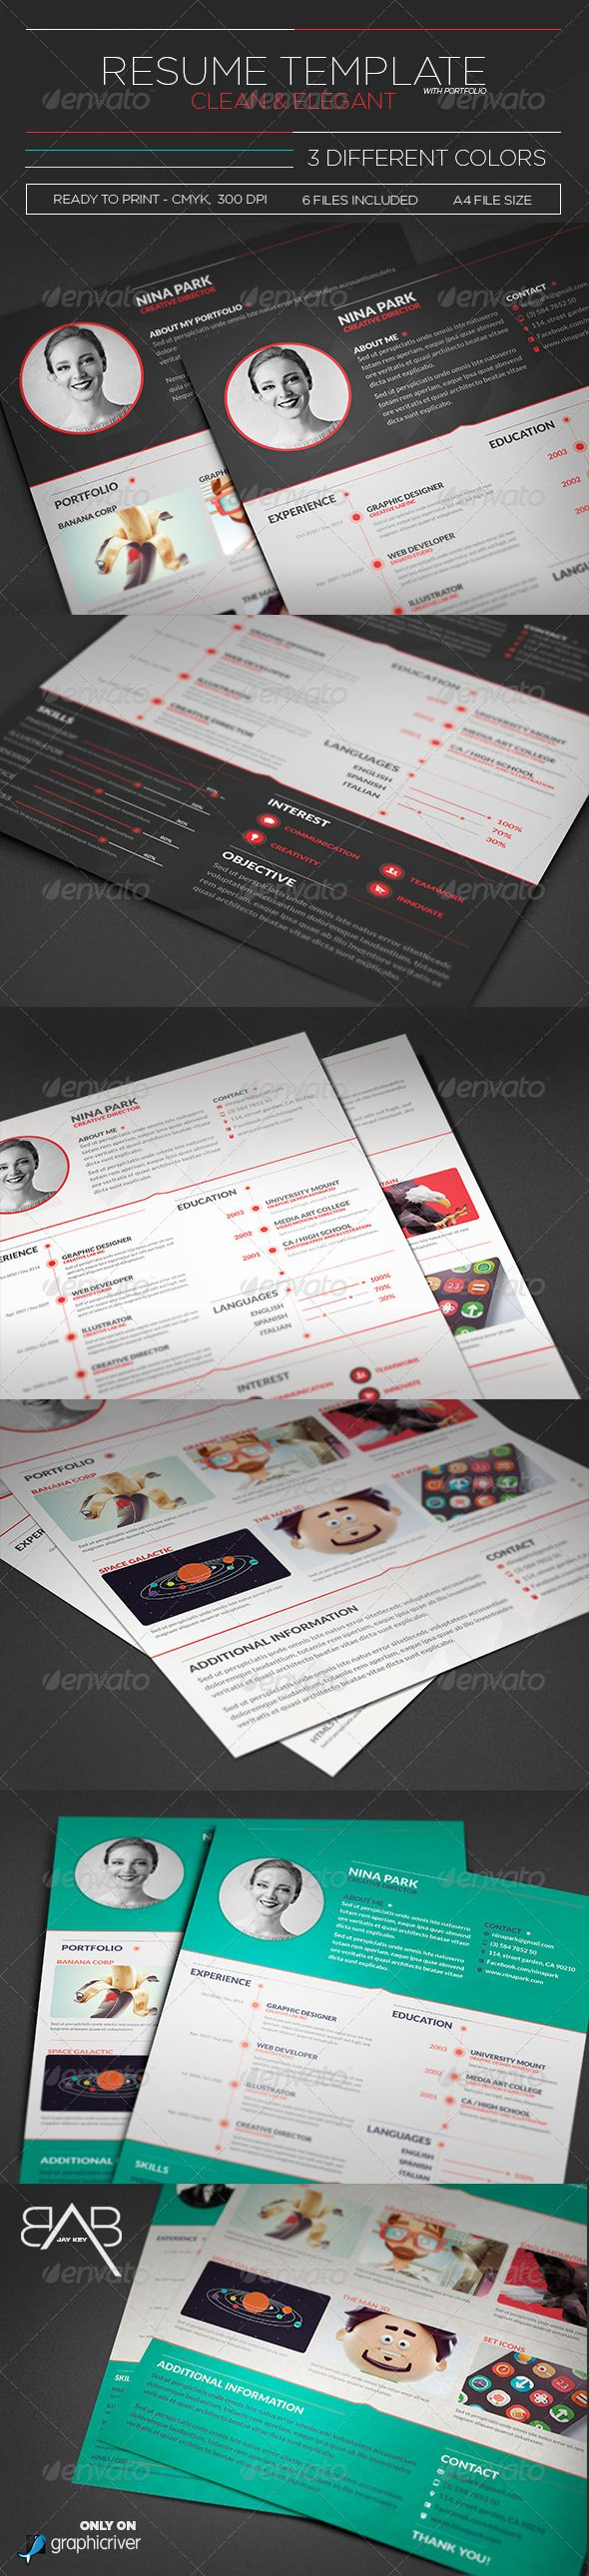 Cute 1 Year Experience Resume In Java J2ee Tiny 10 Best Resume Samples Flat 10 Tips For Writing A Good Resume 10 Window Envelope Template Young 100 Dollar Bill Template Bright2 Page Resume Layout 20 Best Images About Creative Resumes On Pinterest | Cool Resumes ..